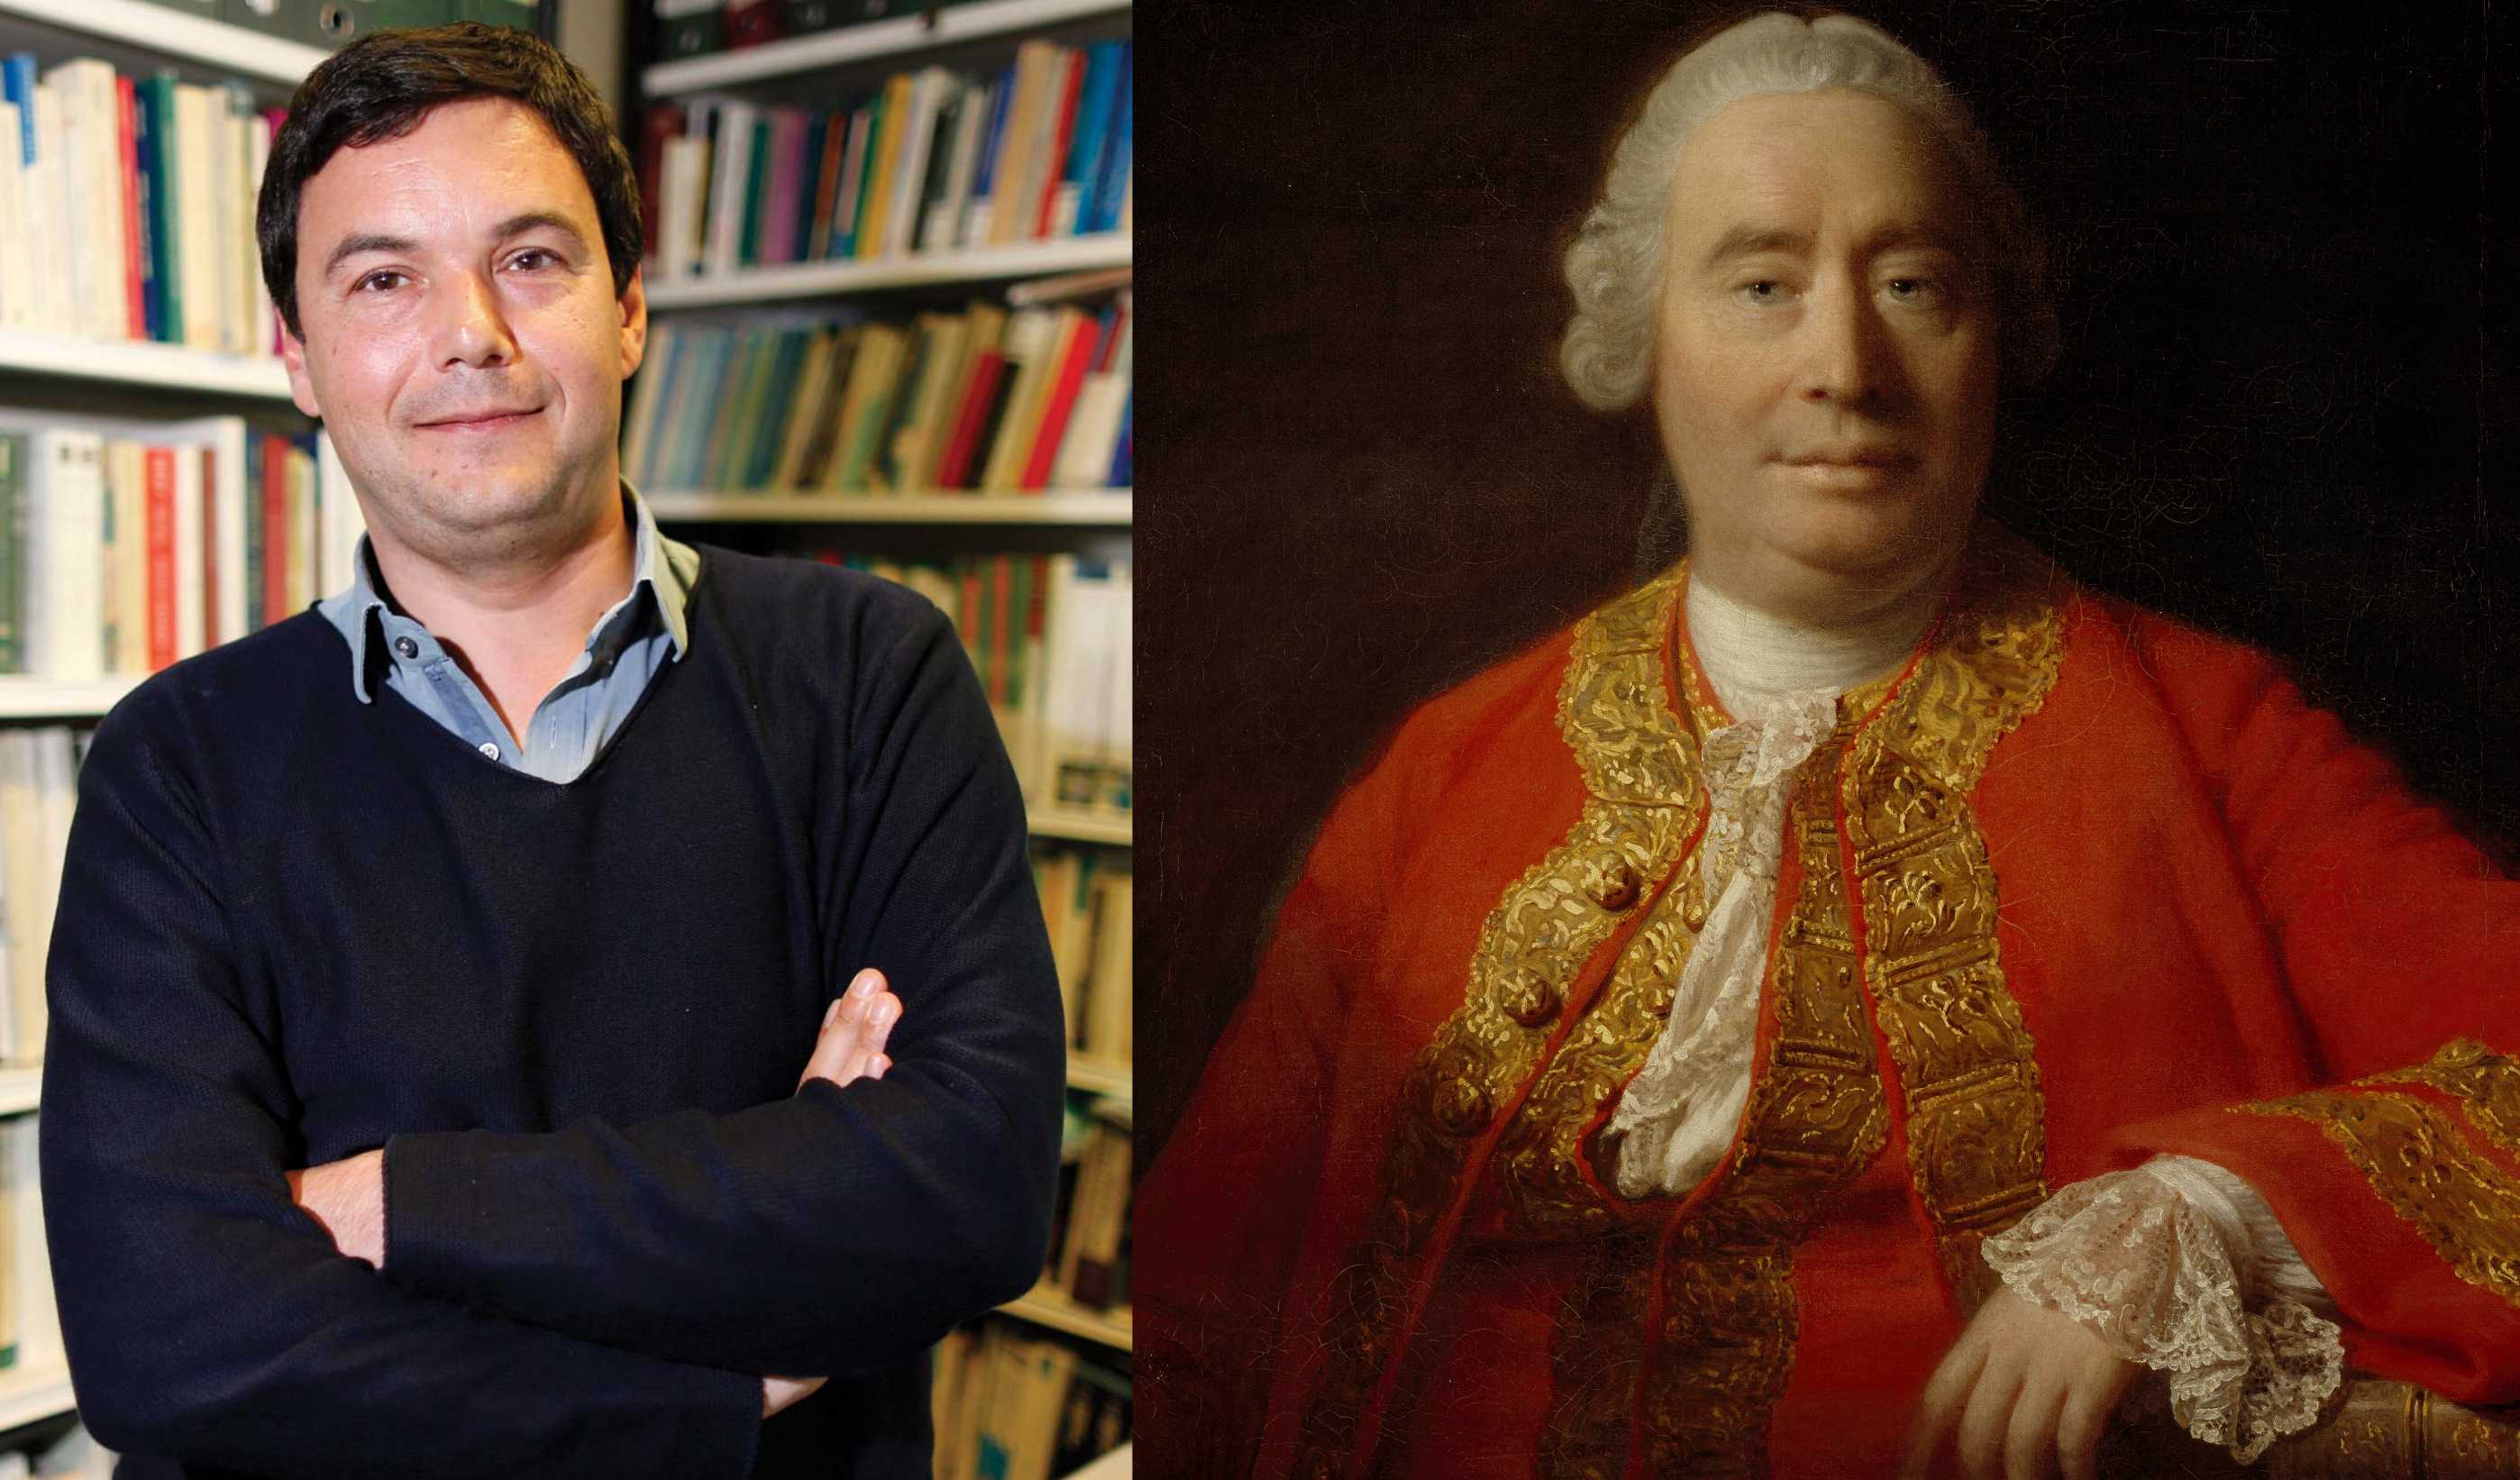 7 de maio – Thomas Piketty e David Hume